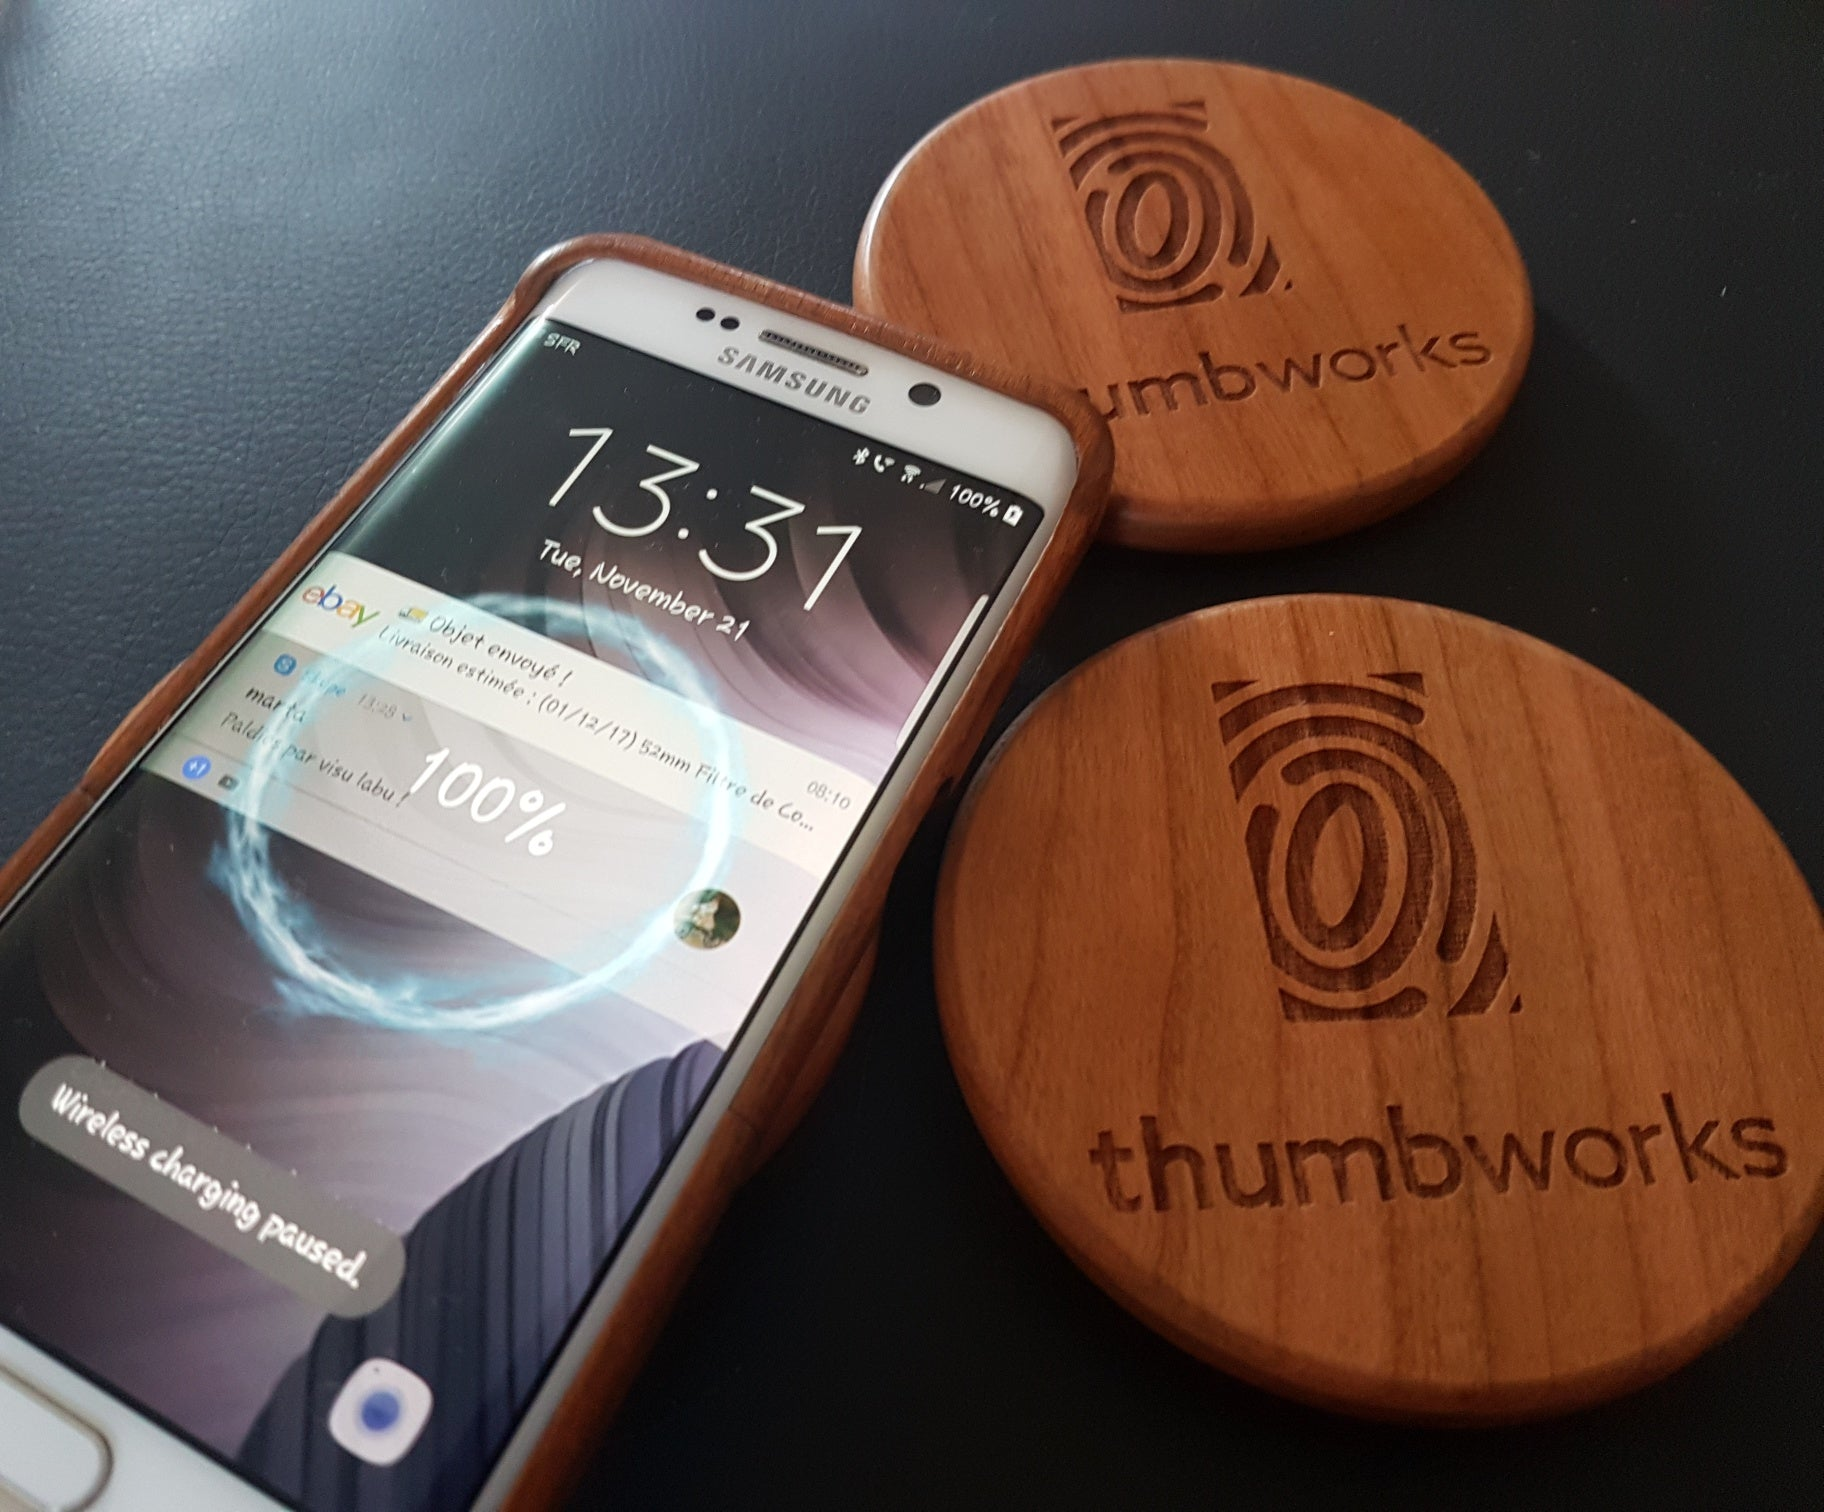 Wood QI Charger Wireless Charging Pad Custom Design OPEN FLOWER OF LIFE Engraved Cherry Wood